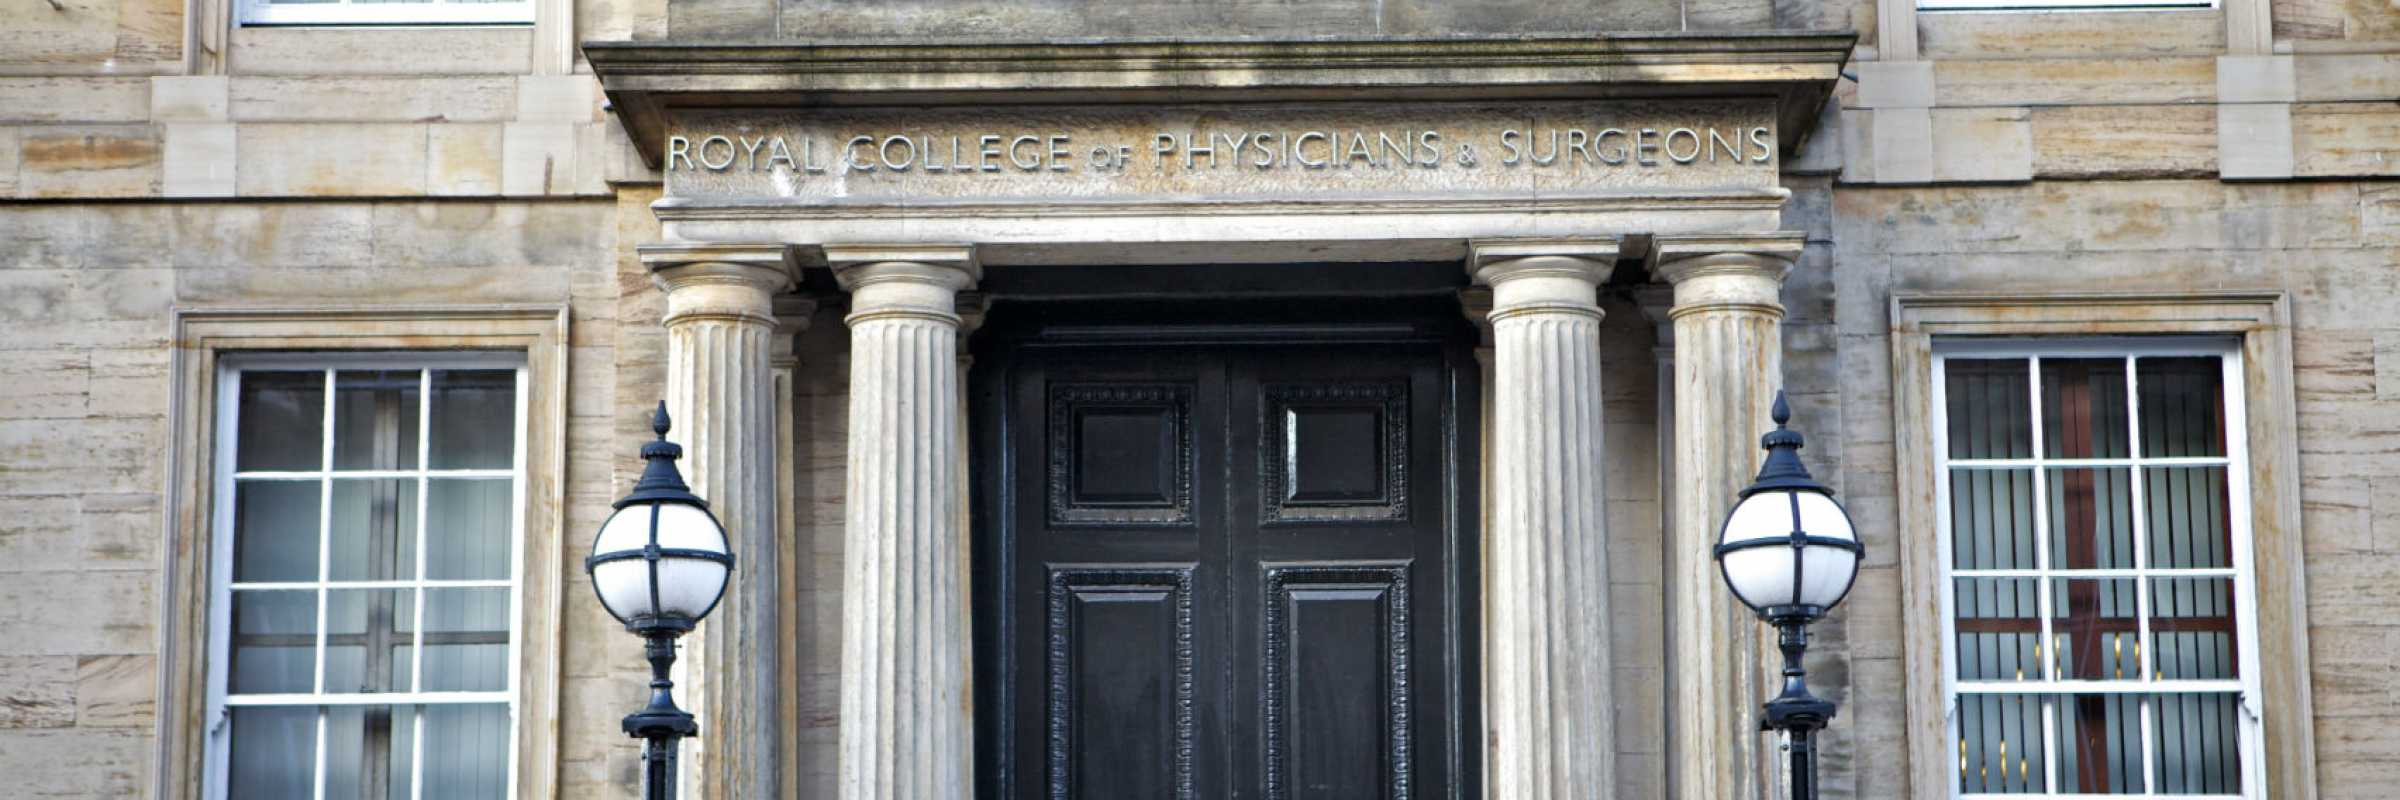 Royal College of Physicians and Surgeons, Glasgow